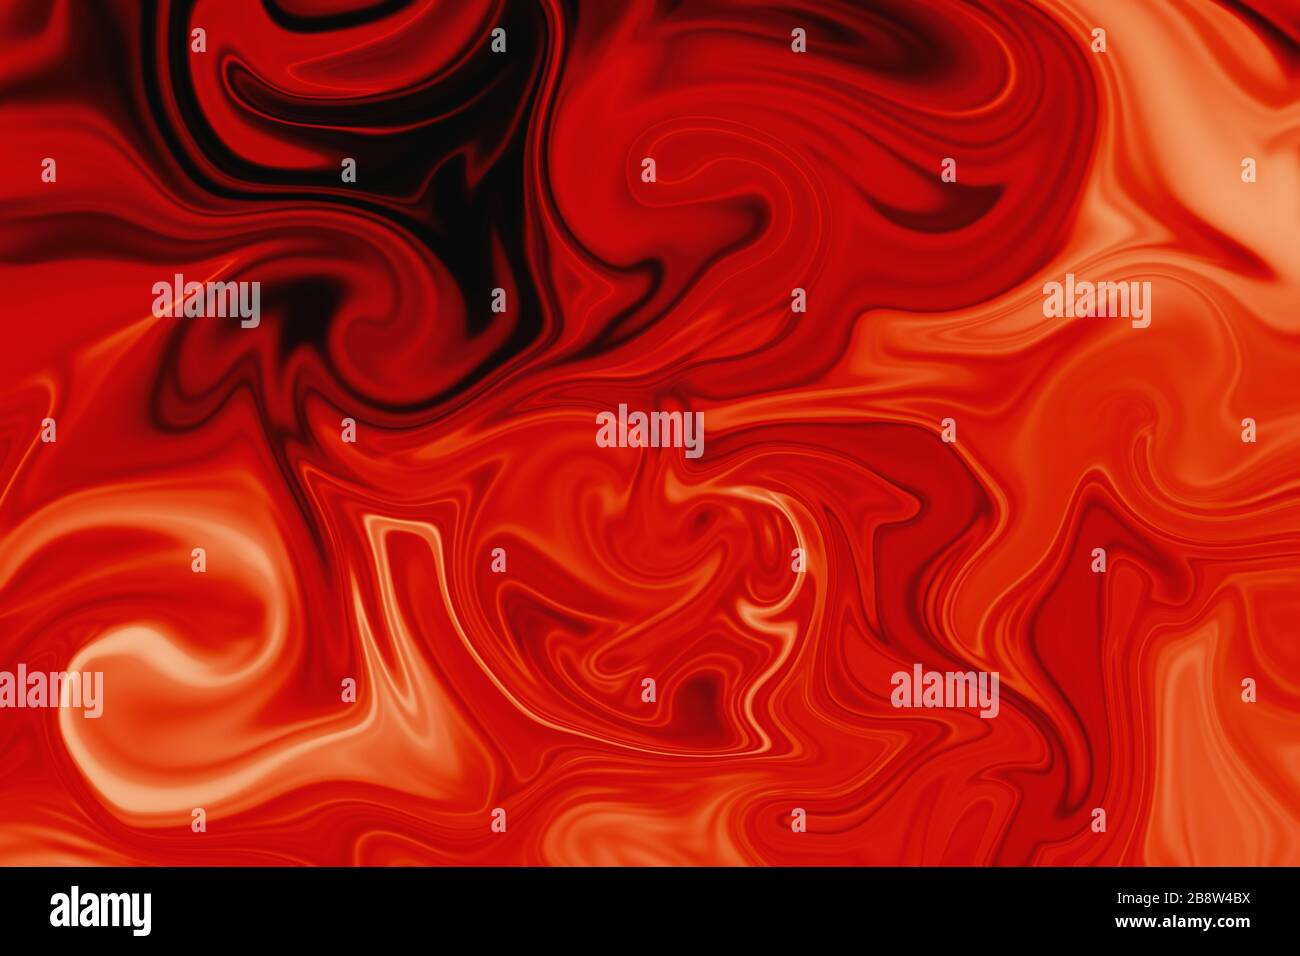 Red Blood Fluid Abstract Background Red Color Texture And Wallpaper Stock Photo Alamy Hd blood burst motion blur green screen 136. https www alamy com red blood fluid abstract background red color texture and wallpaper image349676878 html